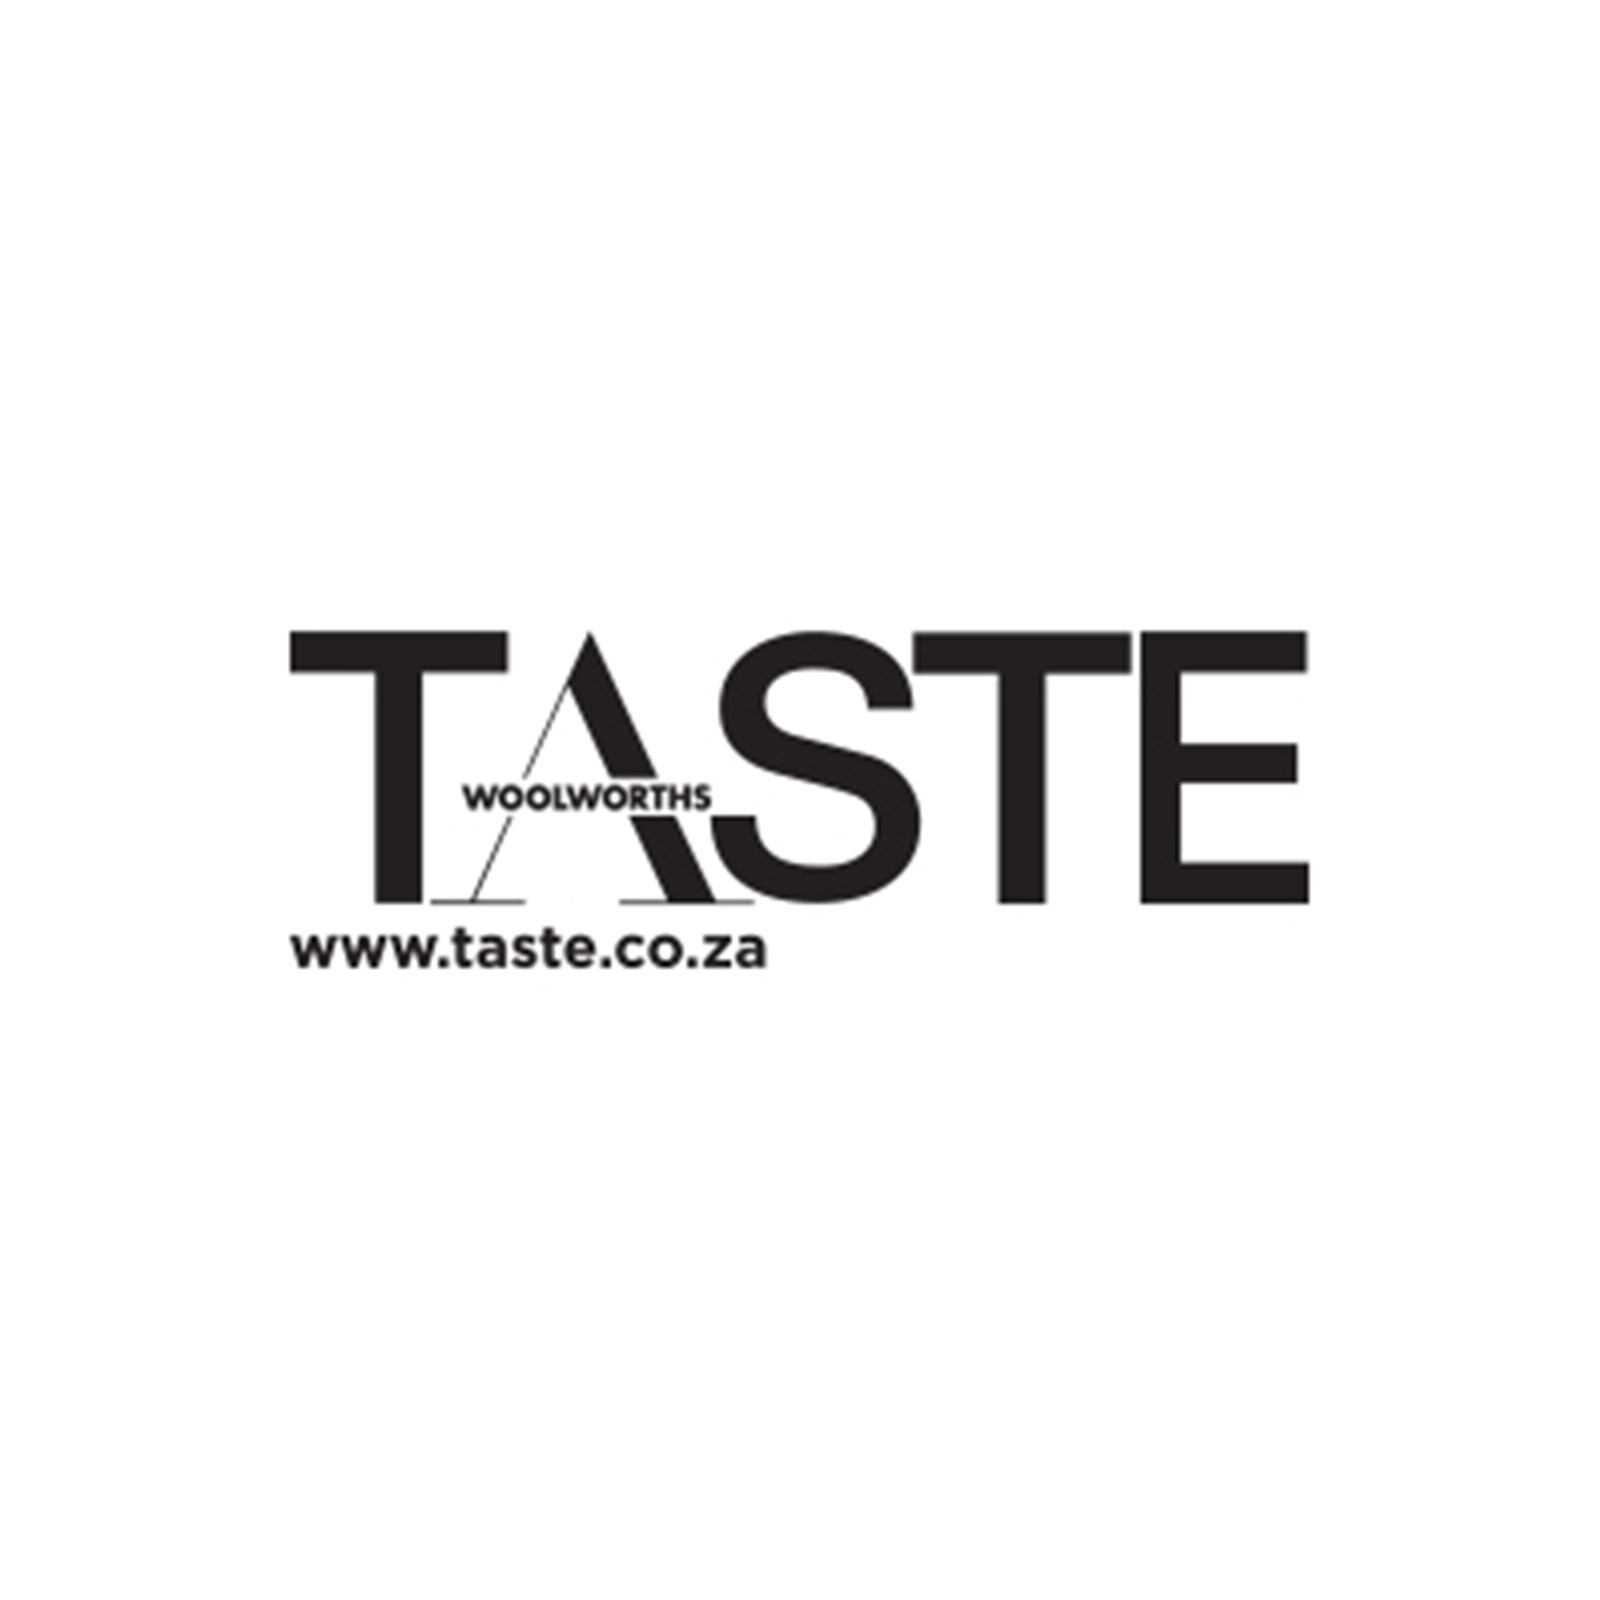 Taste magazine logo for the realise a dream competition to support local entrepreneurs in the food industry in cape town